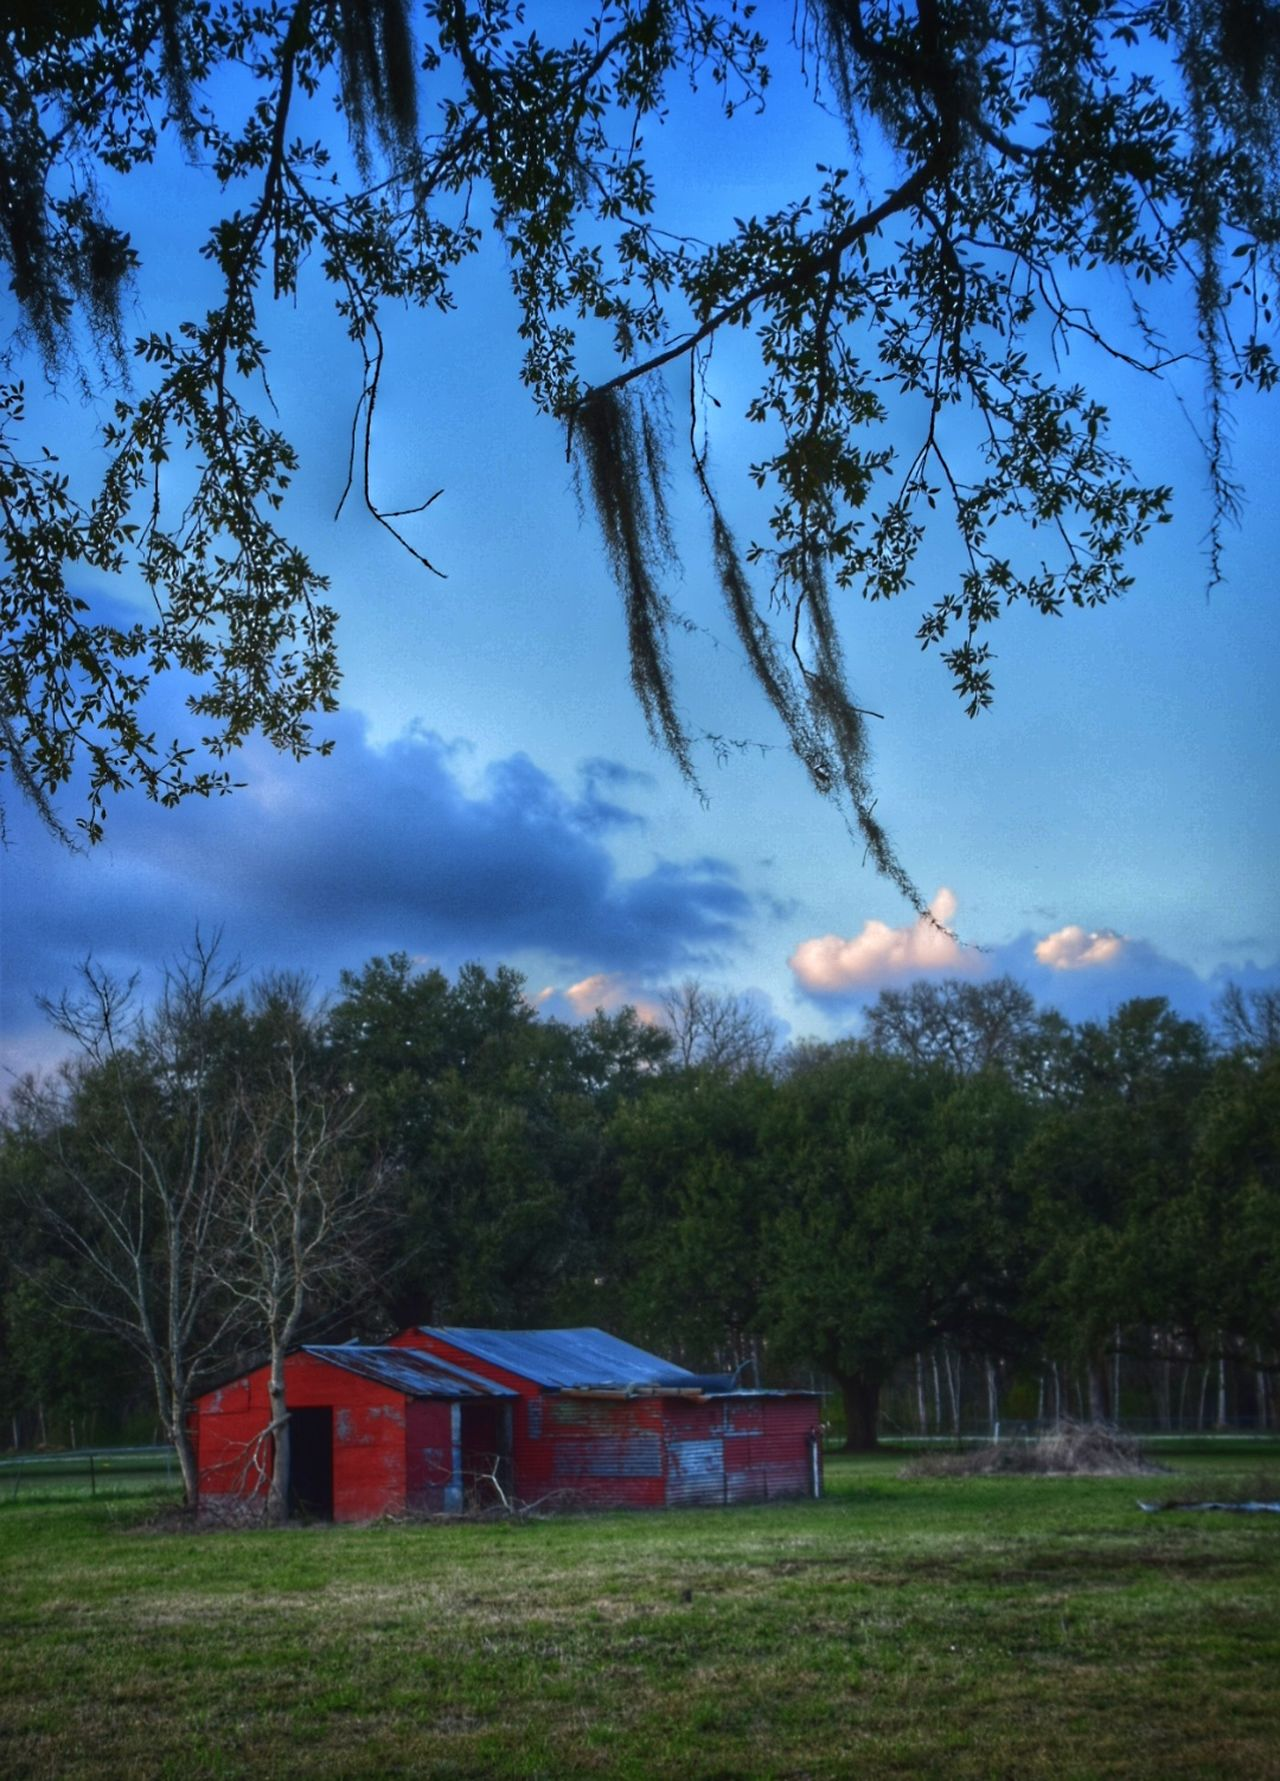 Our barn at sunset from a new vantage point Tree Cloud - Sky Sky Nature Green Color No People Outdoors Growth Grass Beauty In Nature Architecture Day Woods Metal South Louisiana Fields Photography Nikon_photography Clouds & Sky Rural Scene Red Barn Flea Market Barns Sky And Trees Built Structure Full Frame